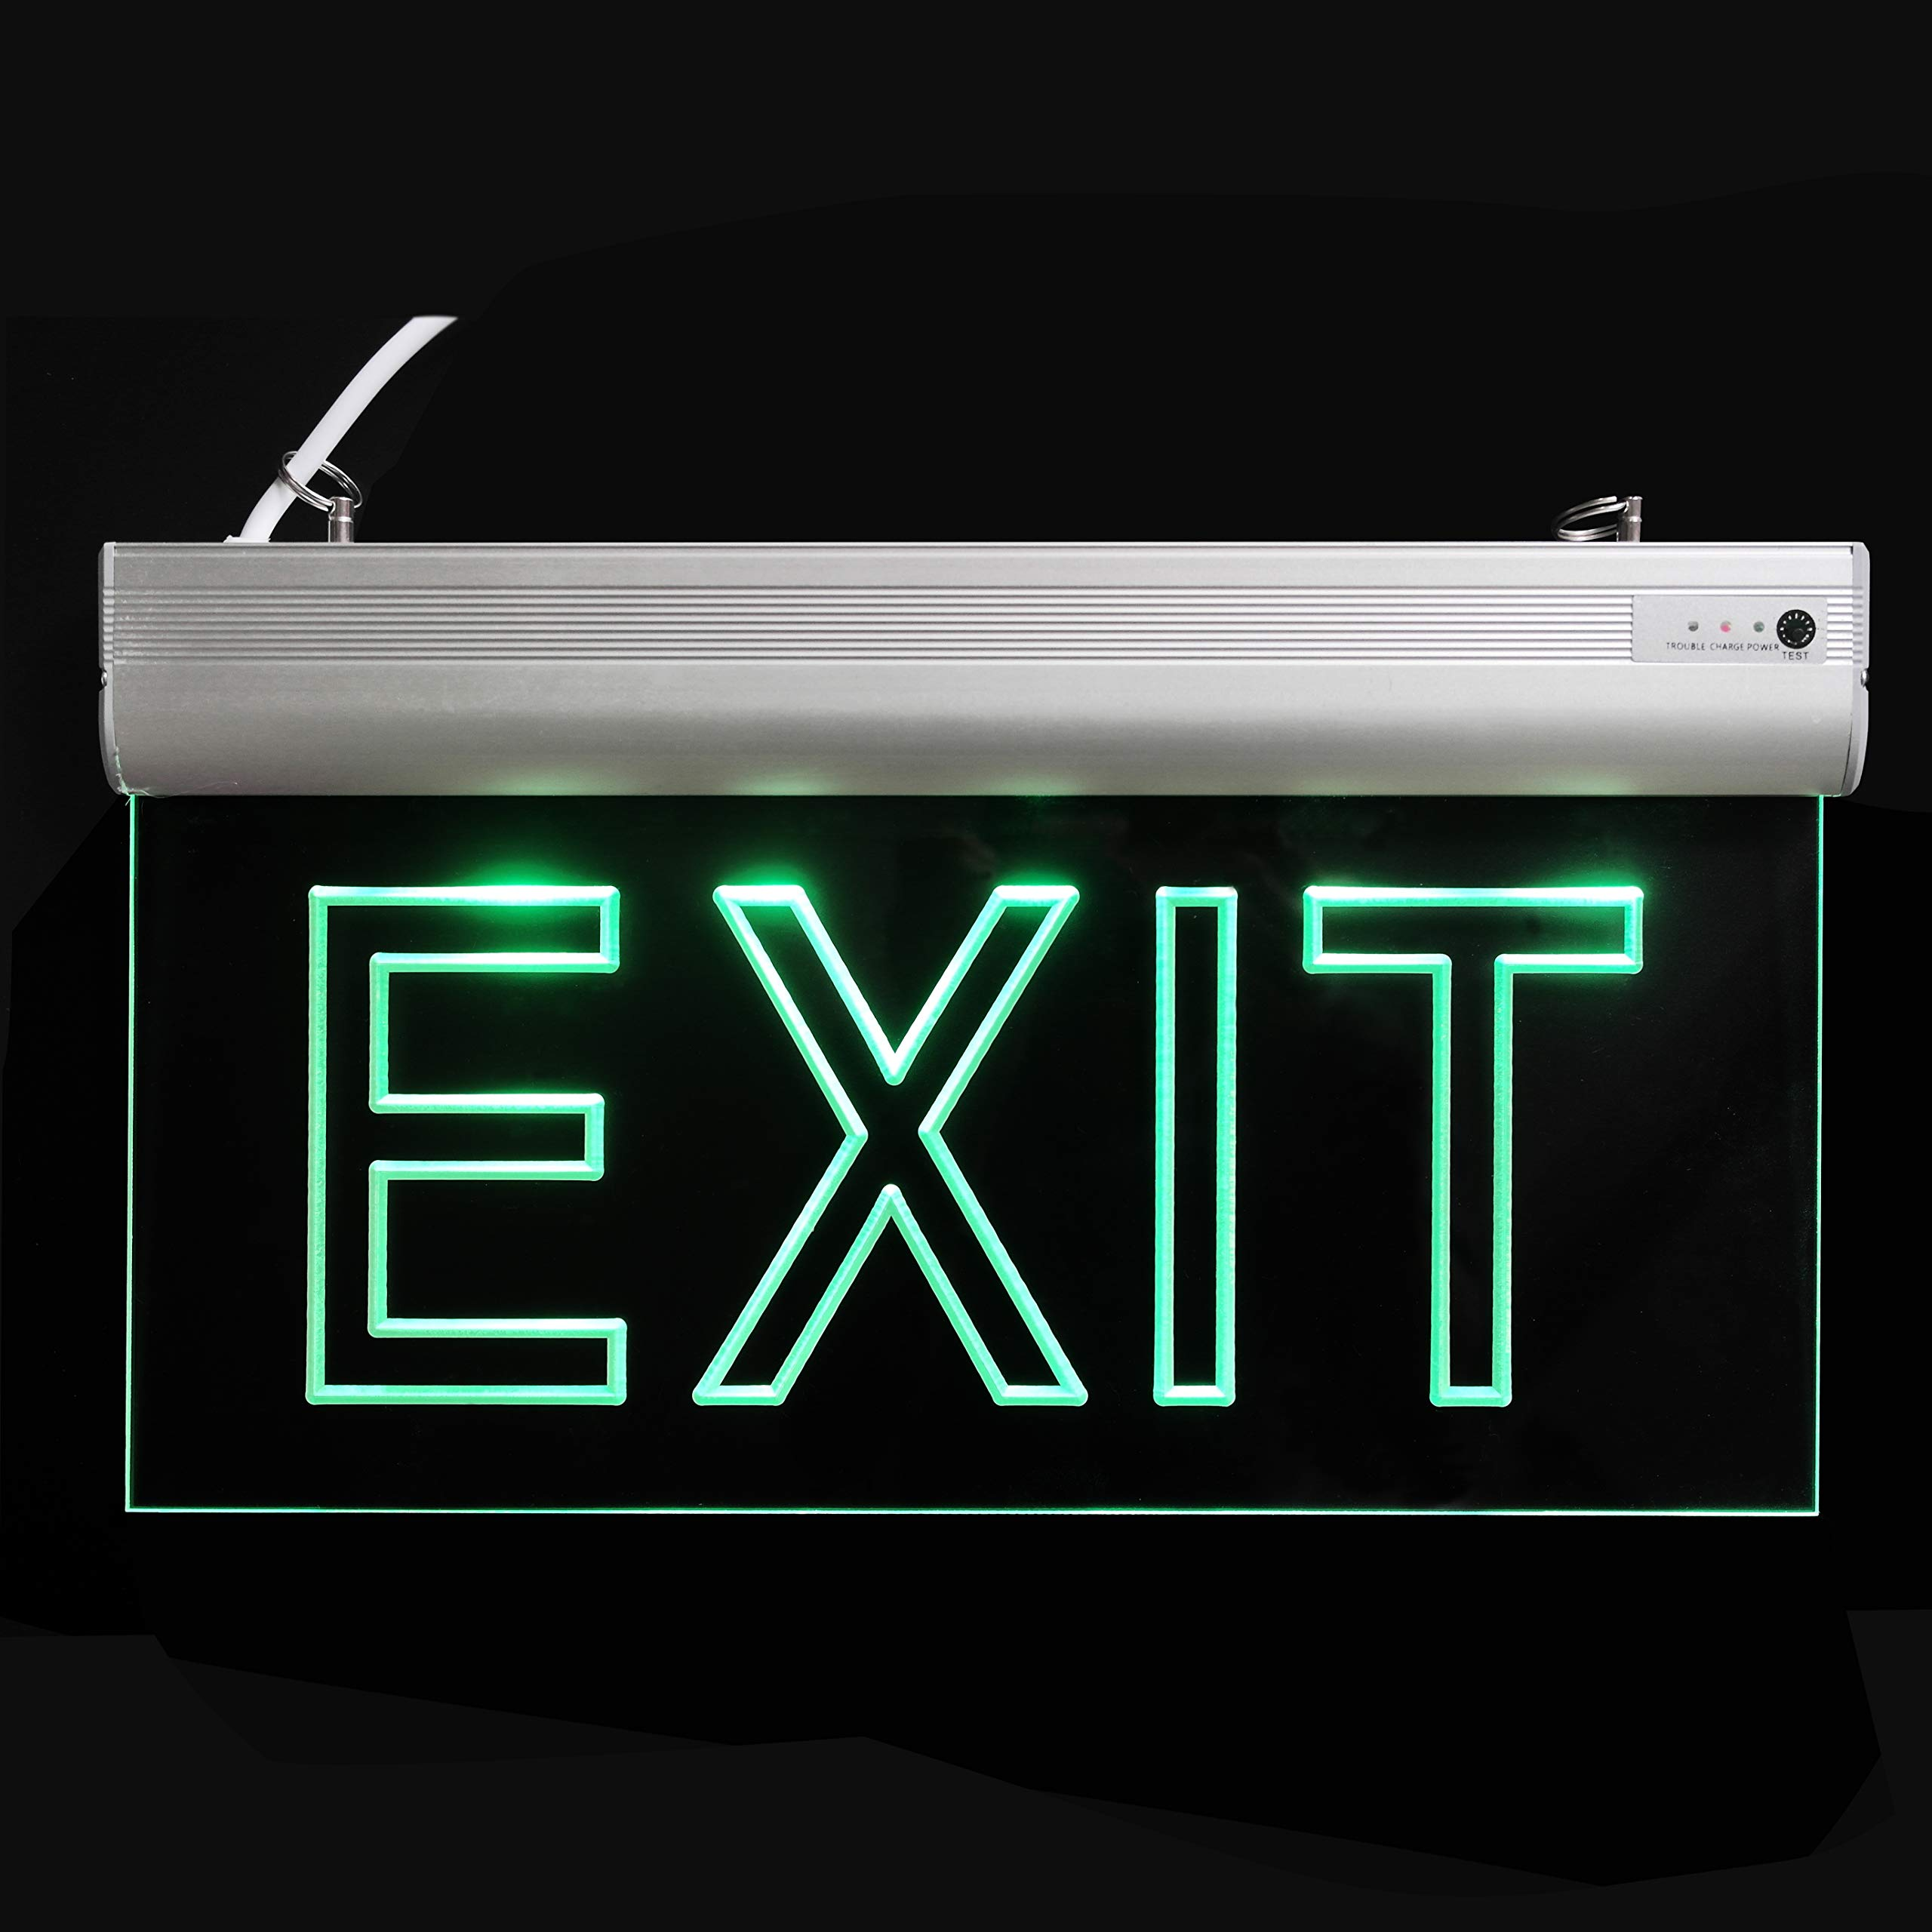 LFI Lights - 2 Pack - Certified - Hardwired Red LED Edge Light Exit Sign - Rotating Panel Battery Backup,Clear Panel(Green) by ryumei (Image #2)